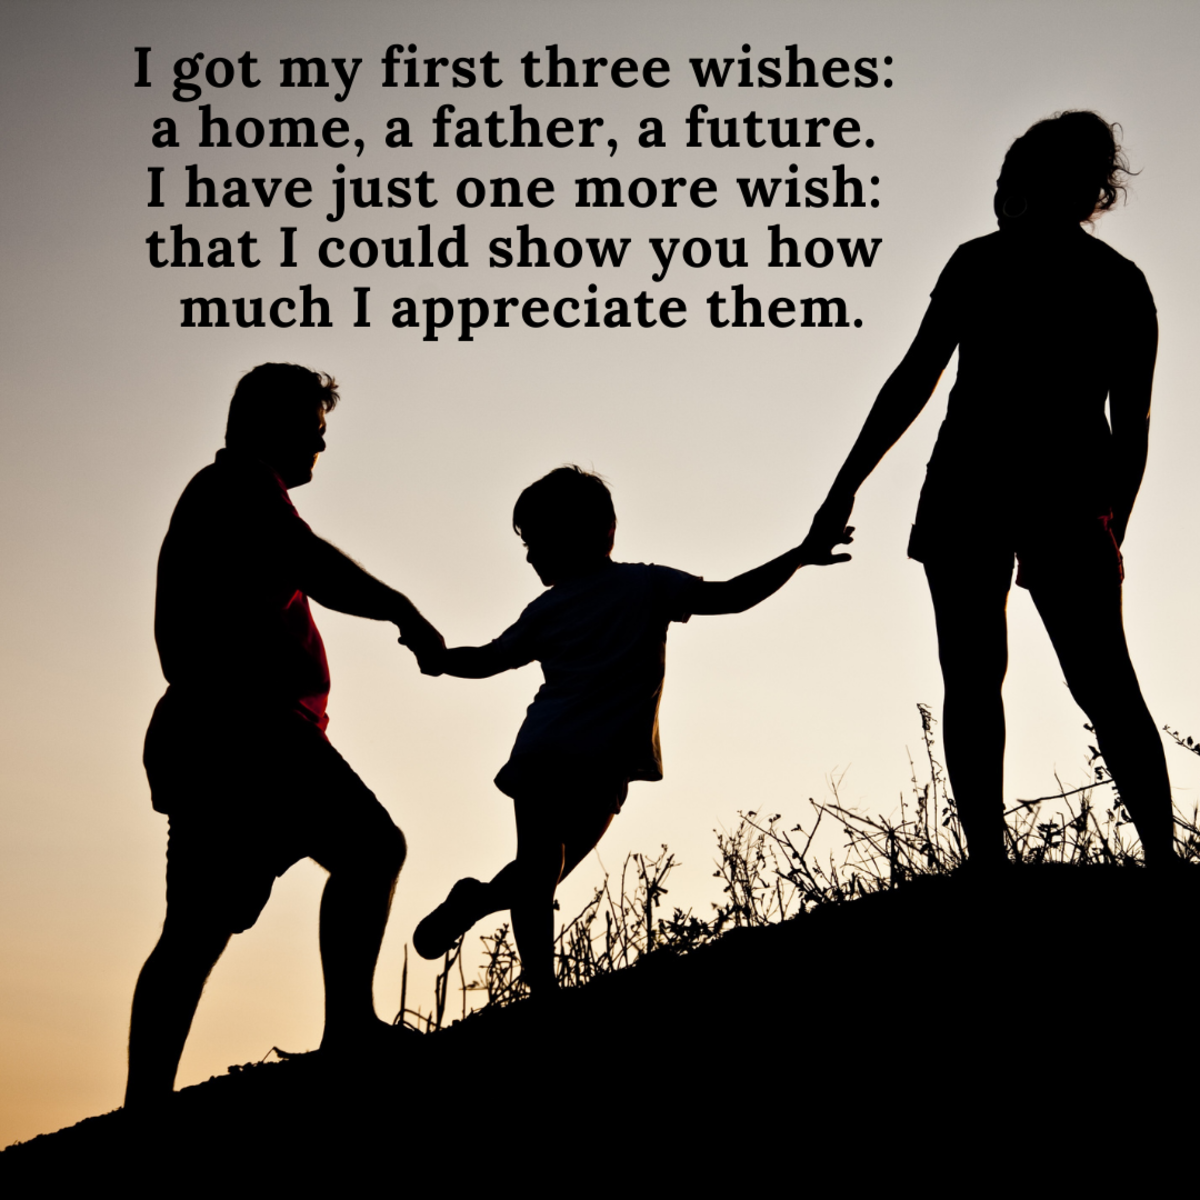 Father figures play such important roles in our lives—give yours a thank-you message he'll never forget.